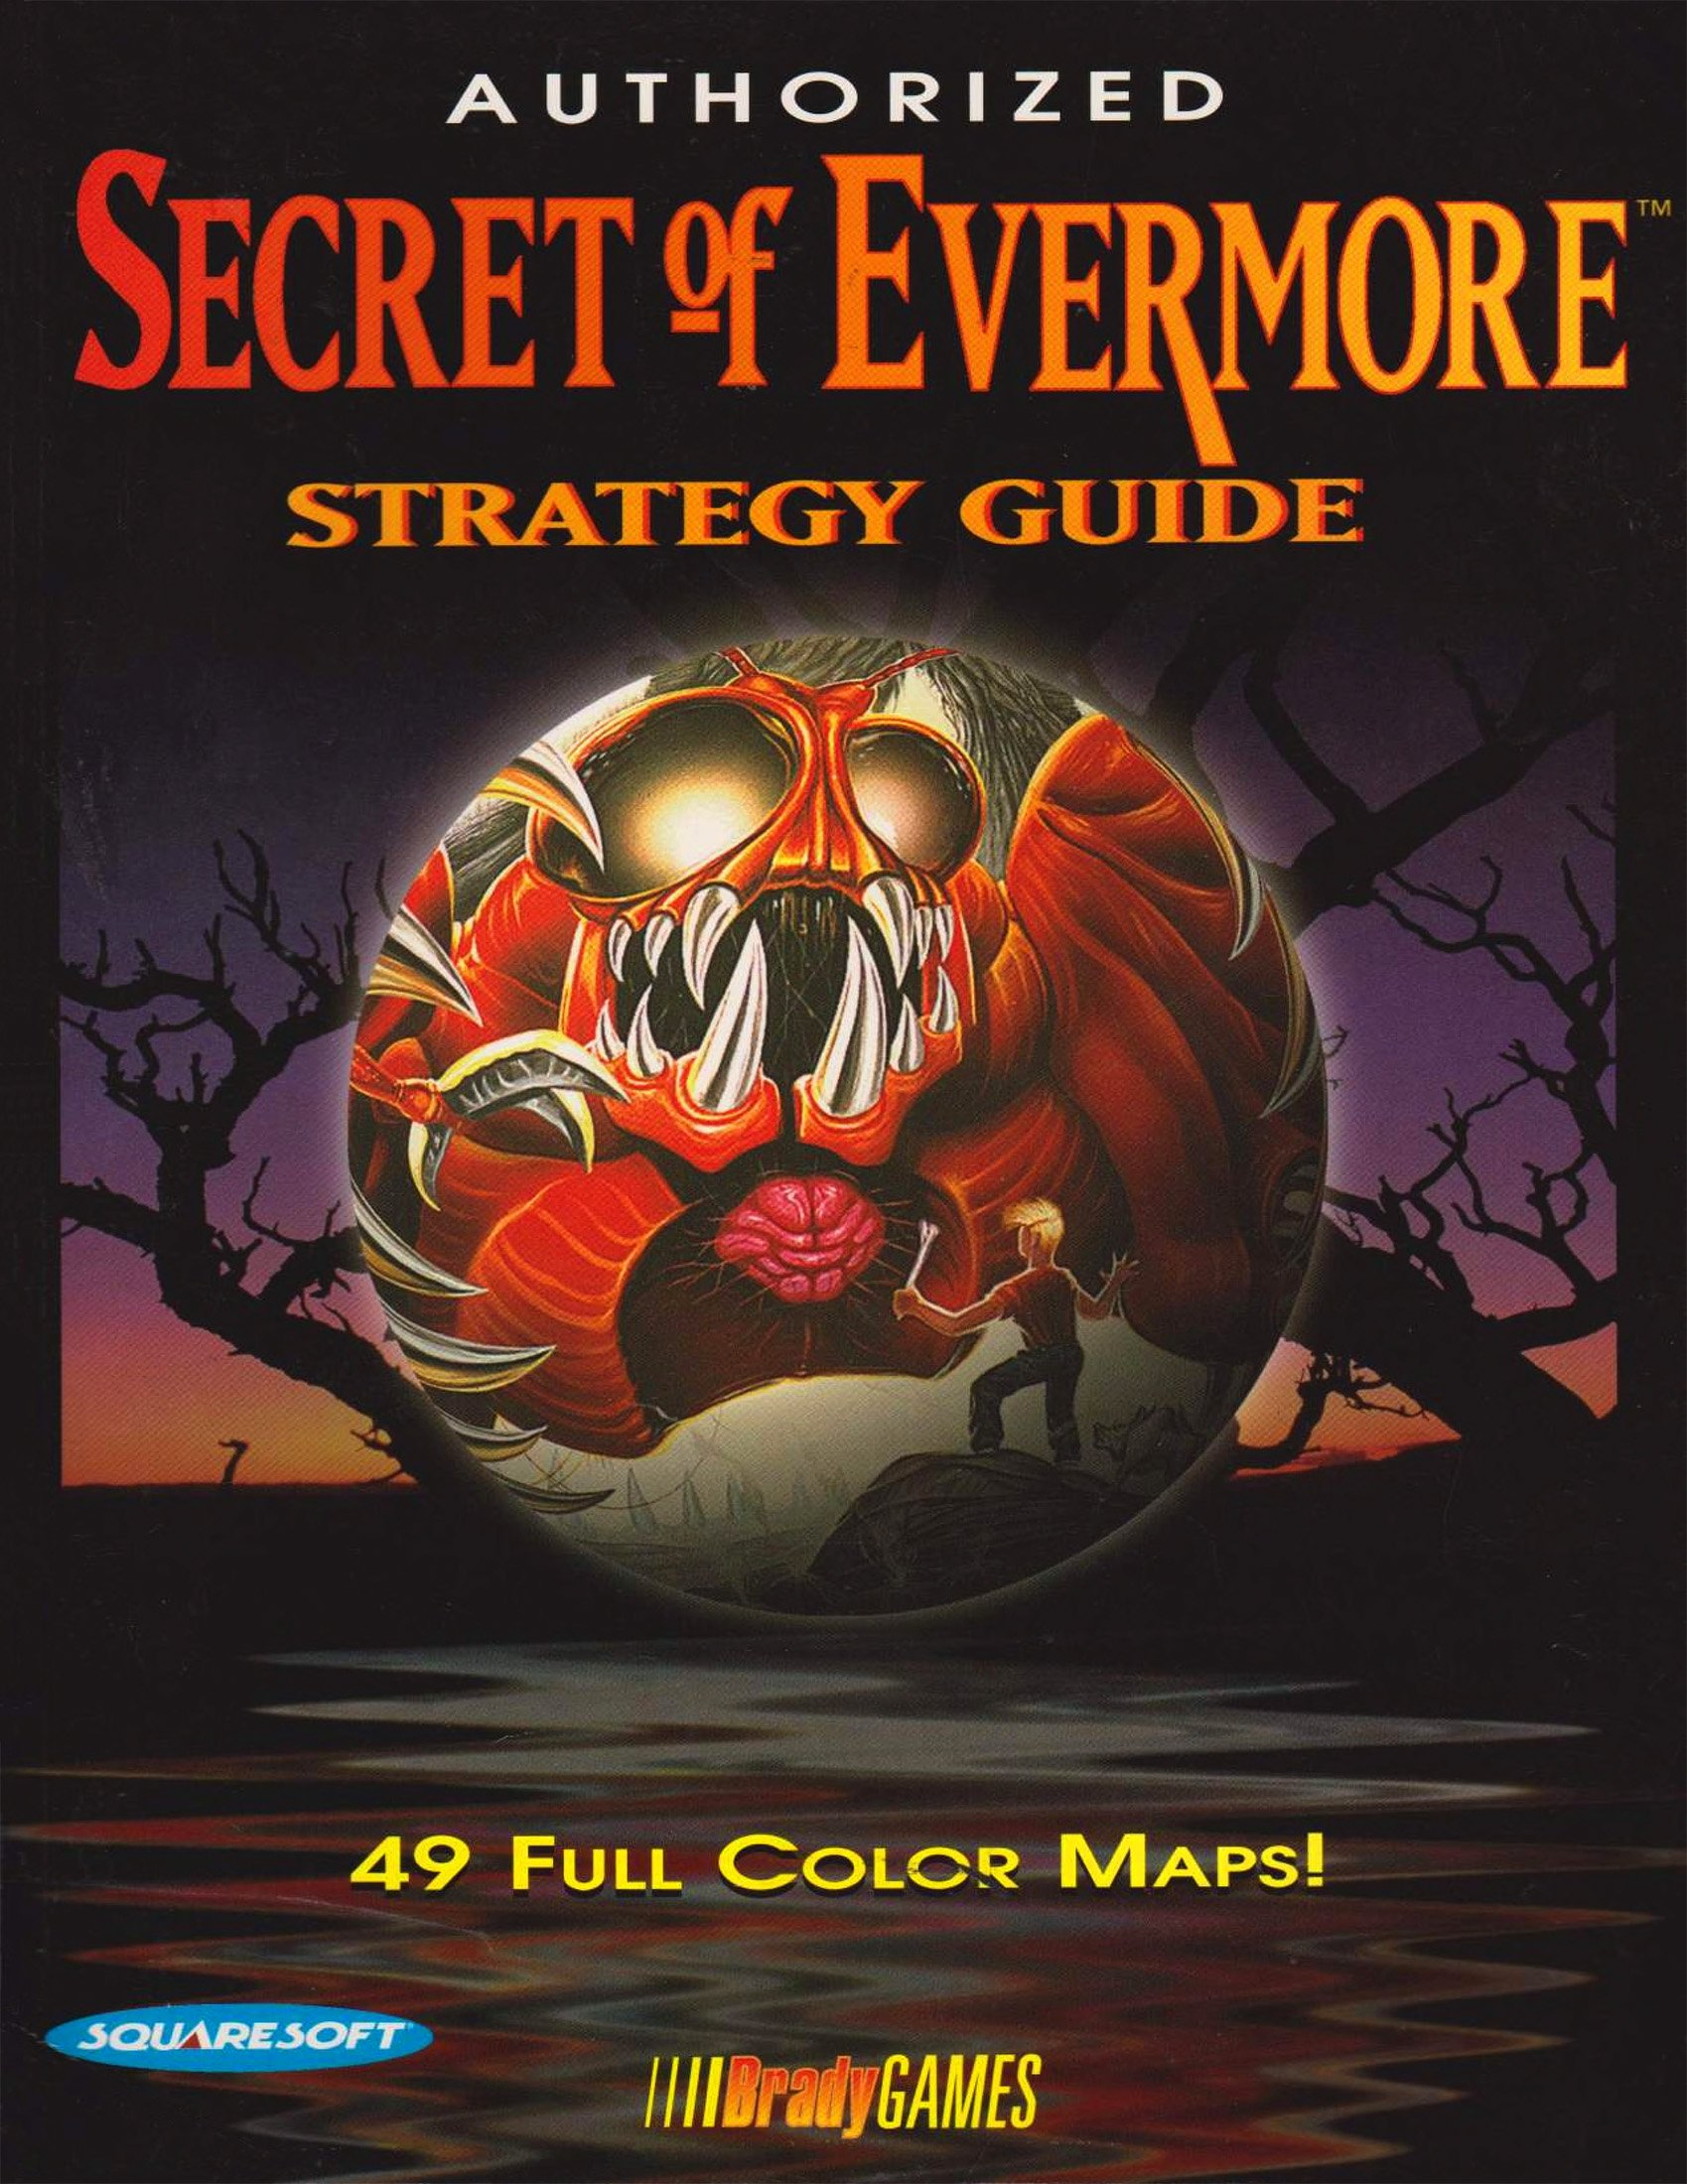 Secret of Evermore Authorized Guide